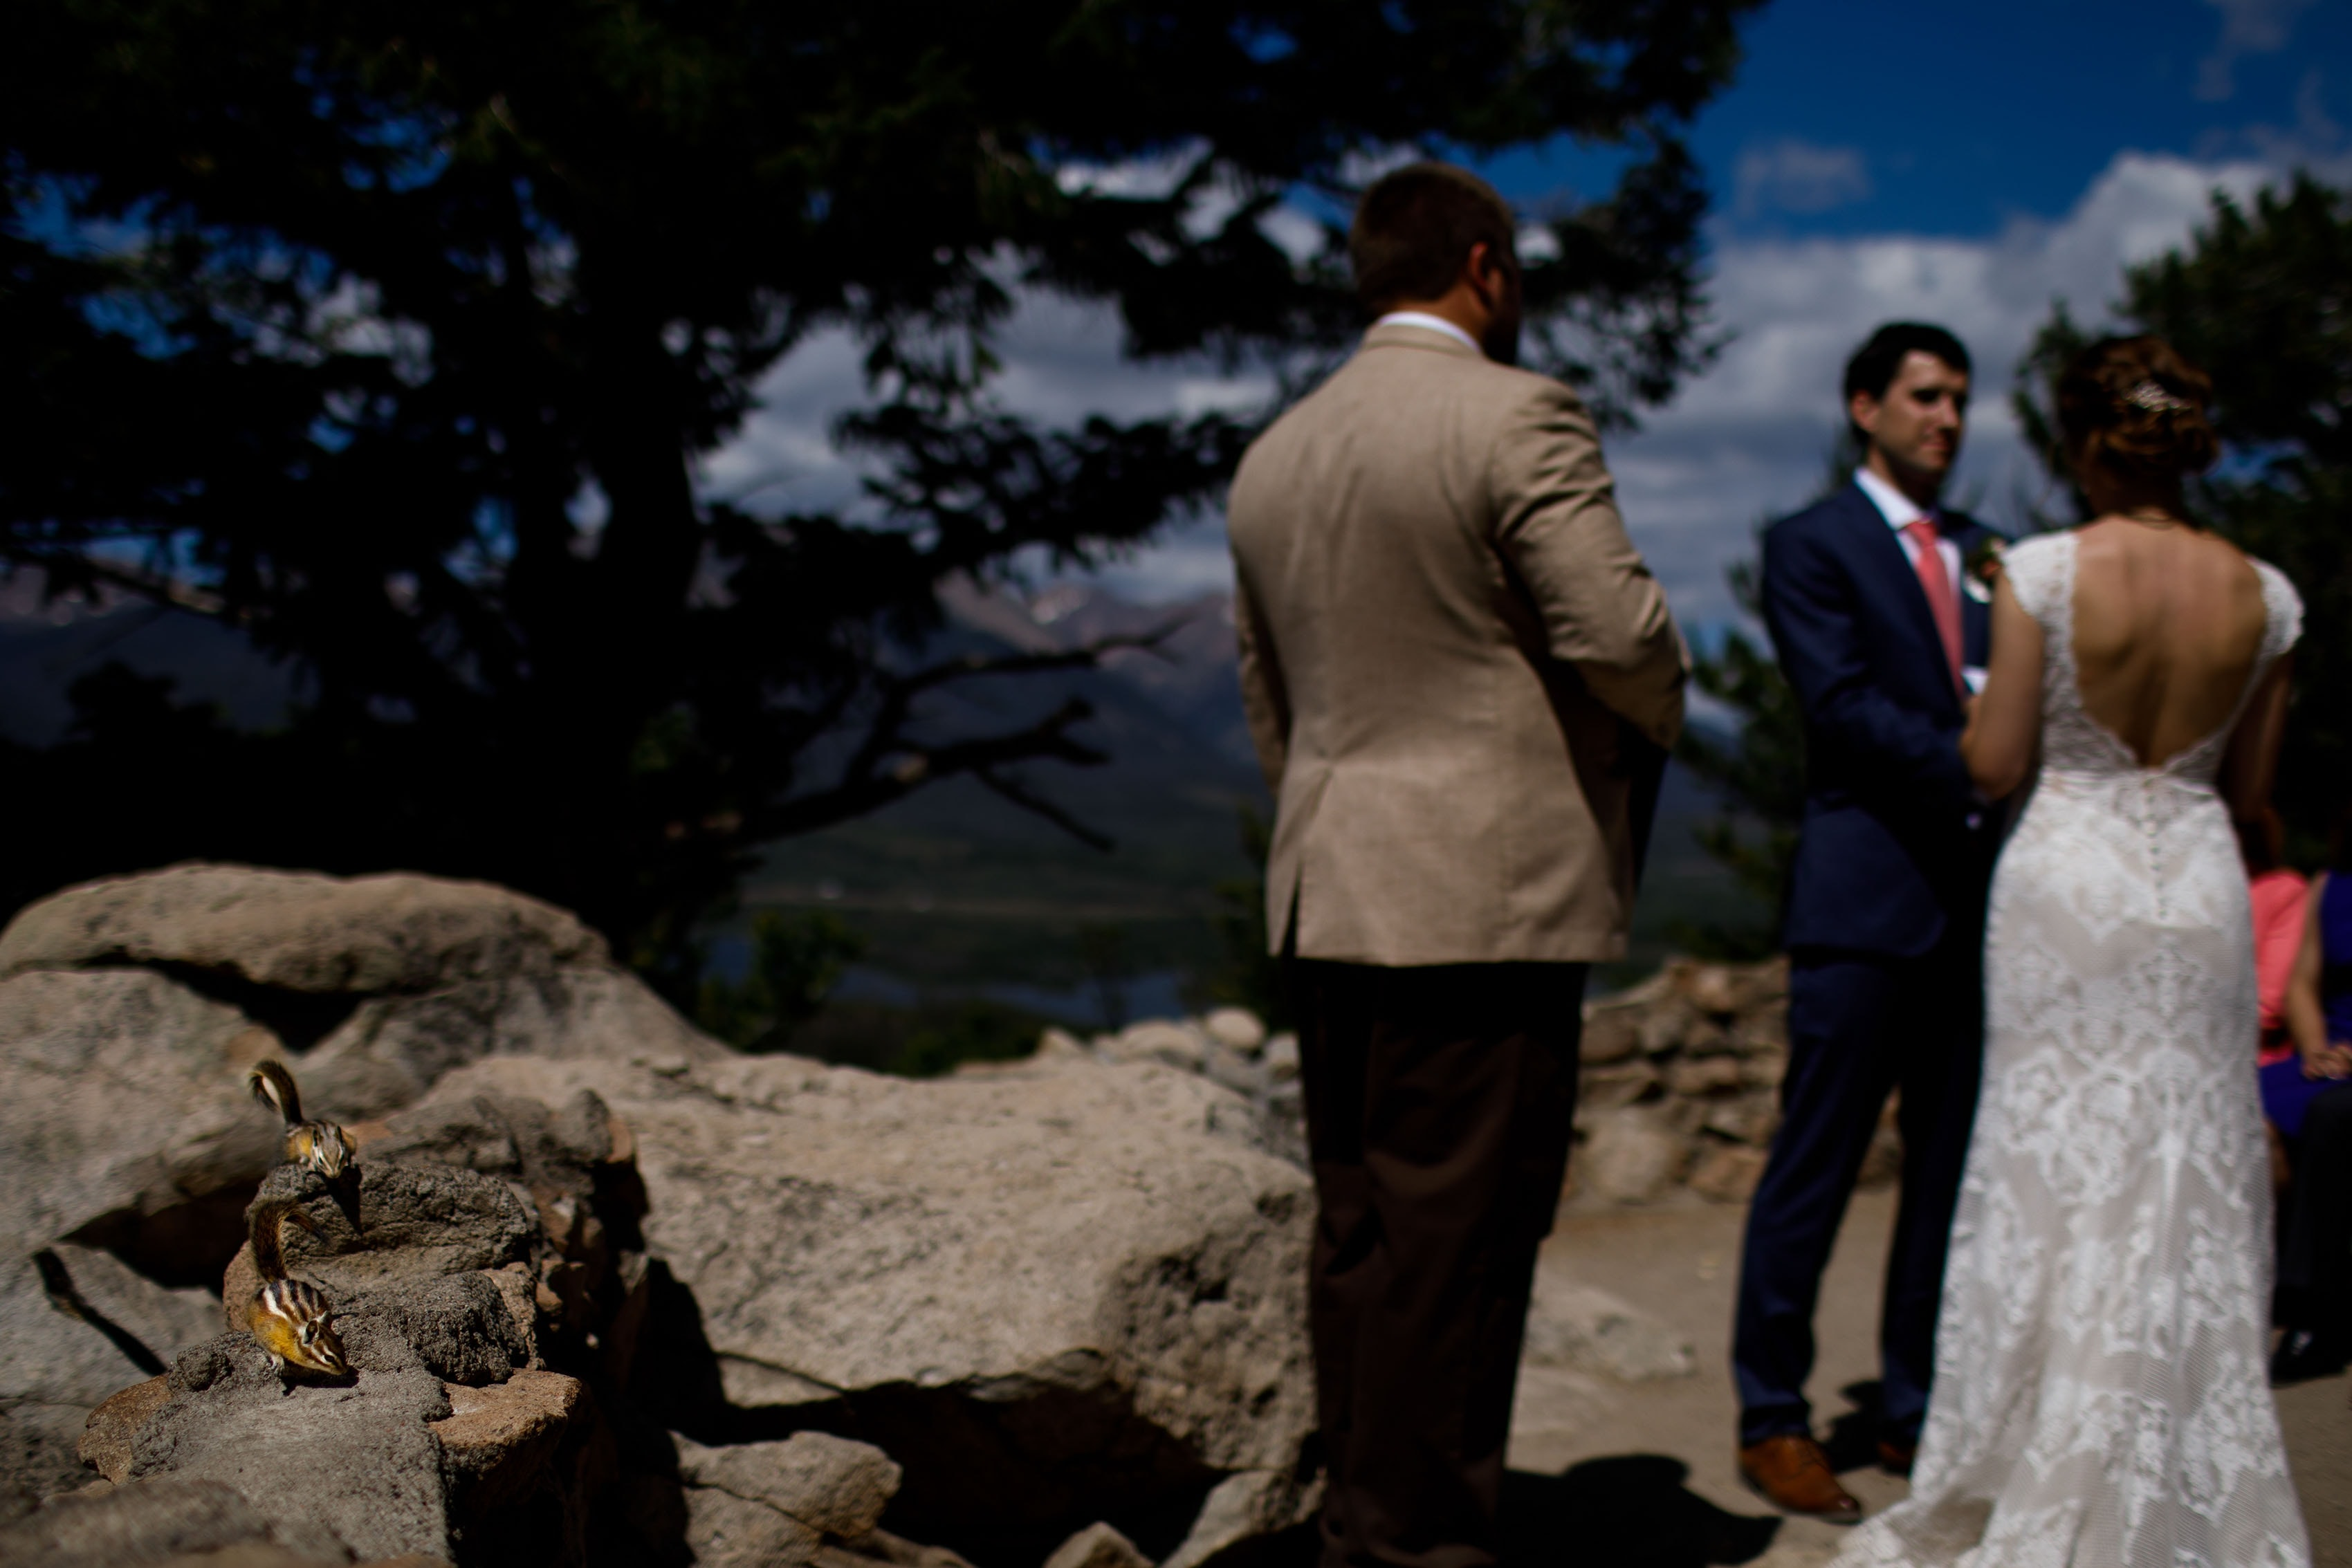 Chipmunks search for food during a wedding ceremony at Sapphire Point